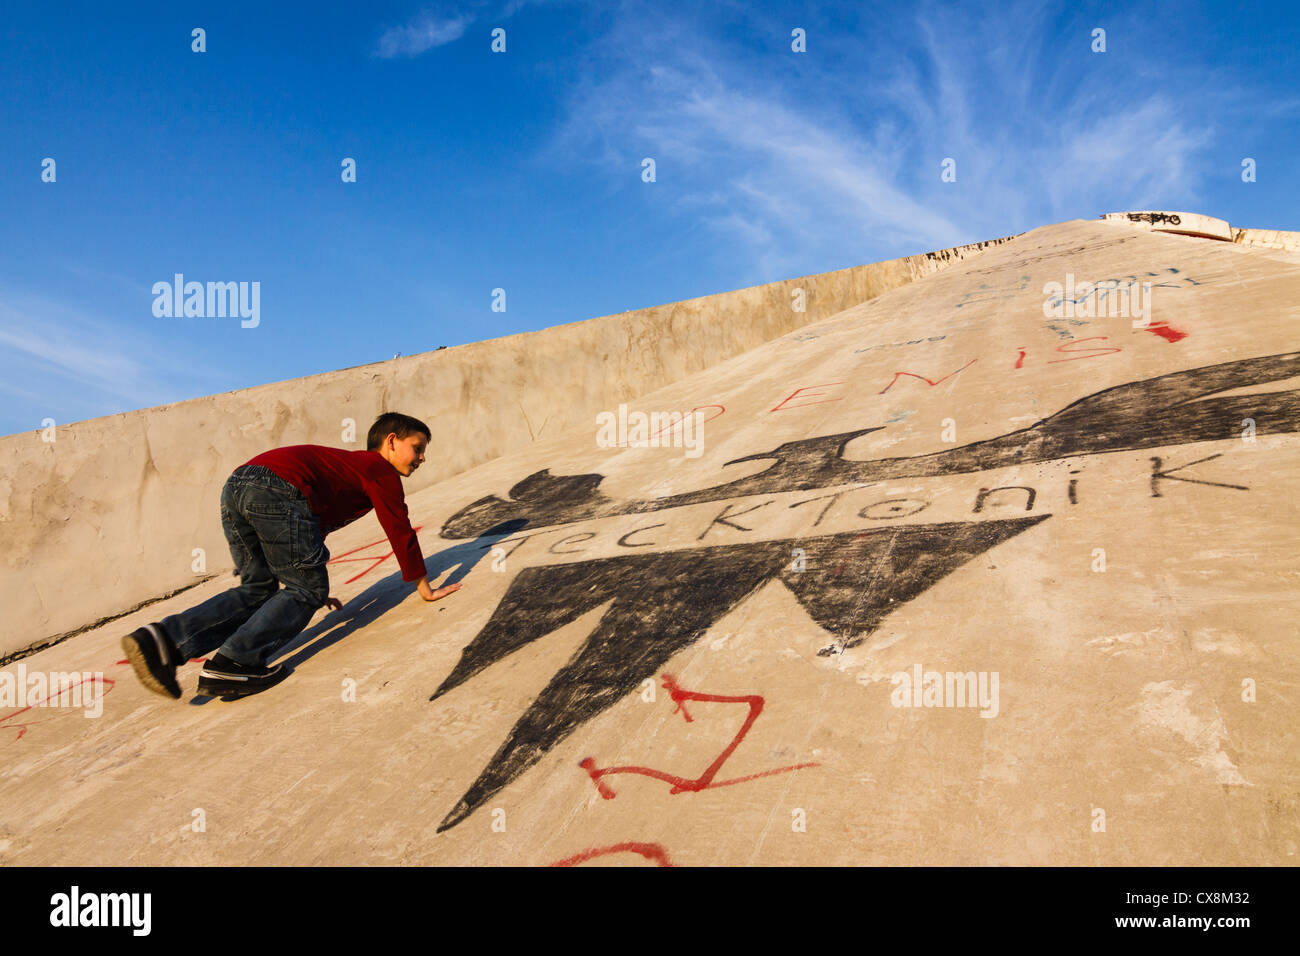 Child climbing up the Pyramid, the former International Center of Culture. Tirana, Albania - Stock Image